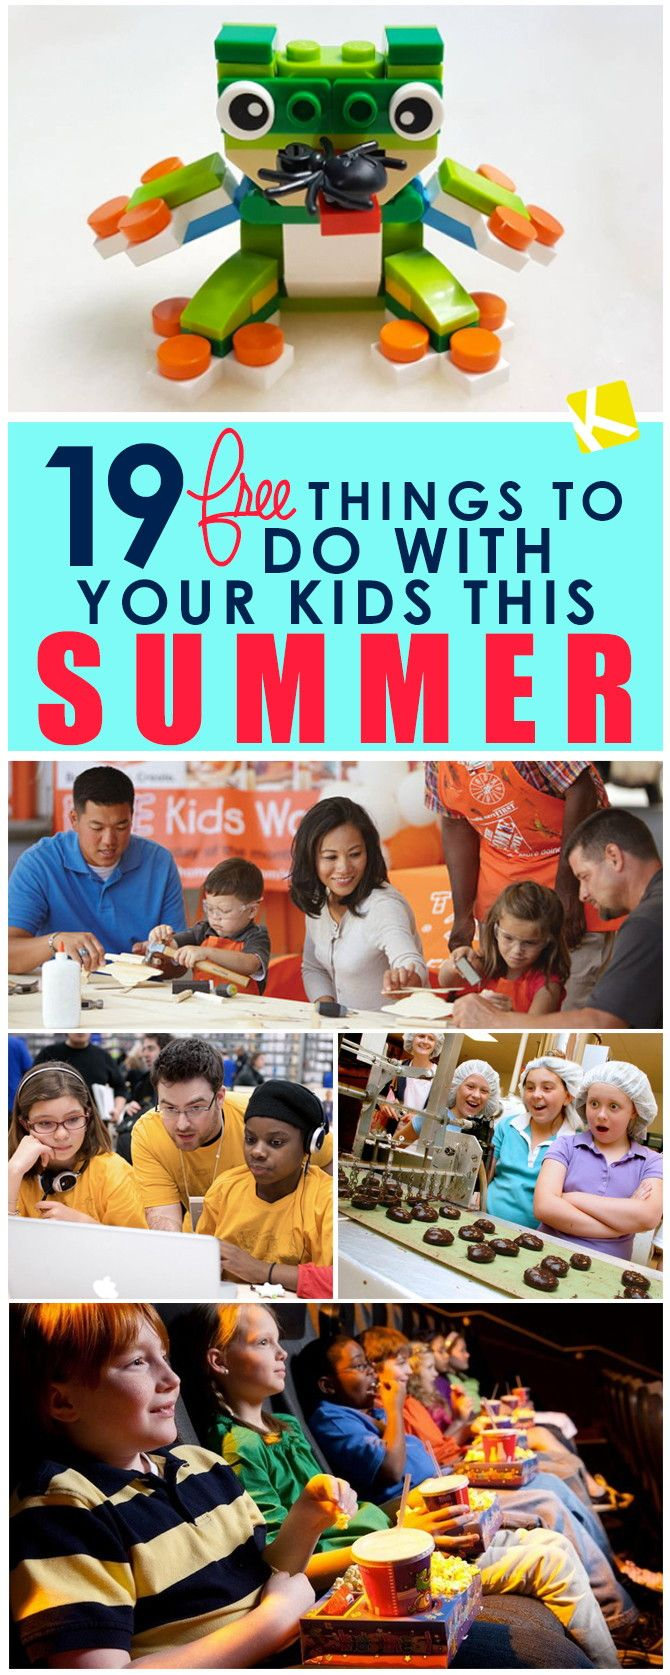 19 Free Things to Do with Your Kids This Summer